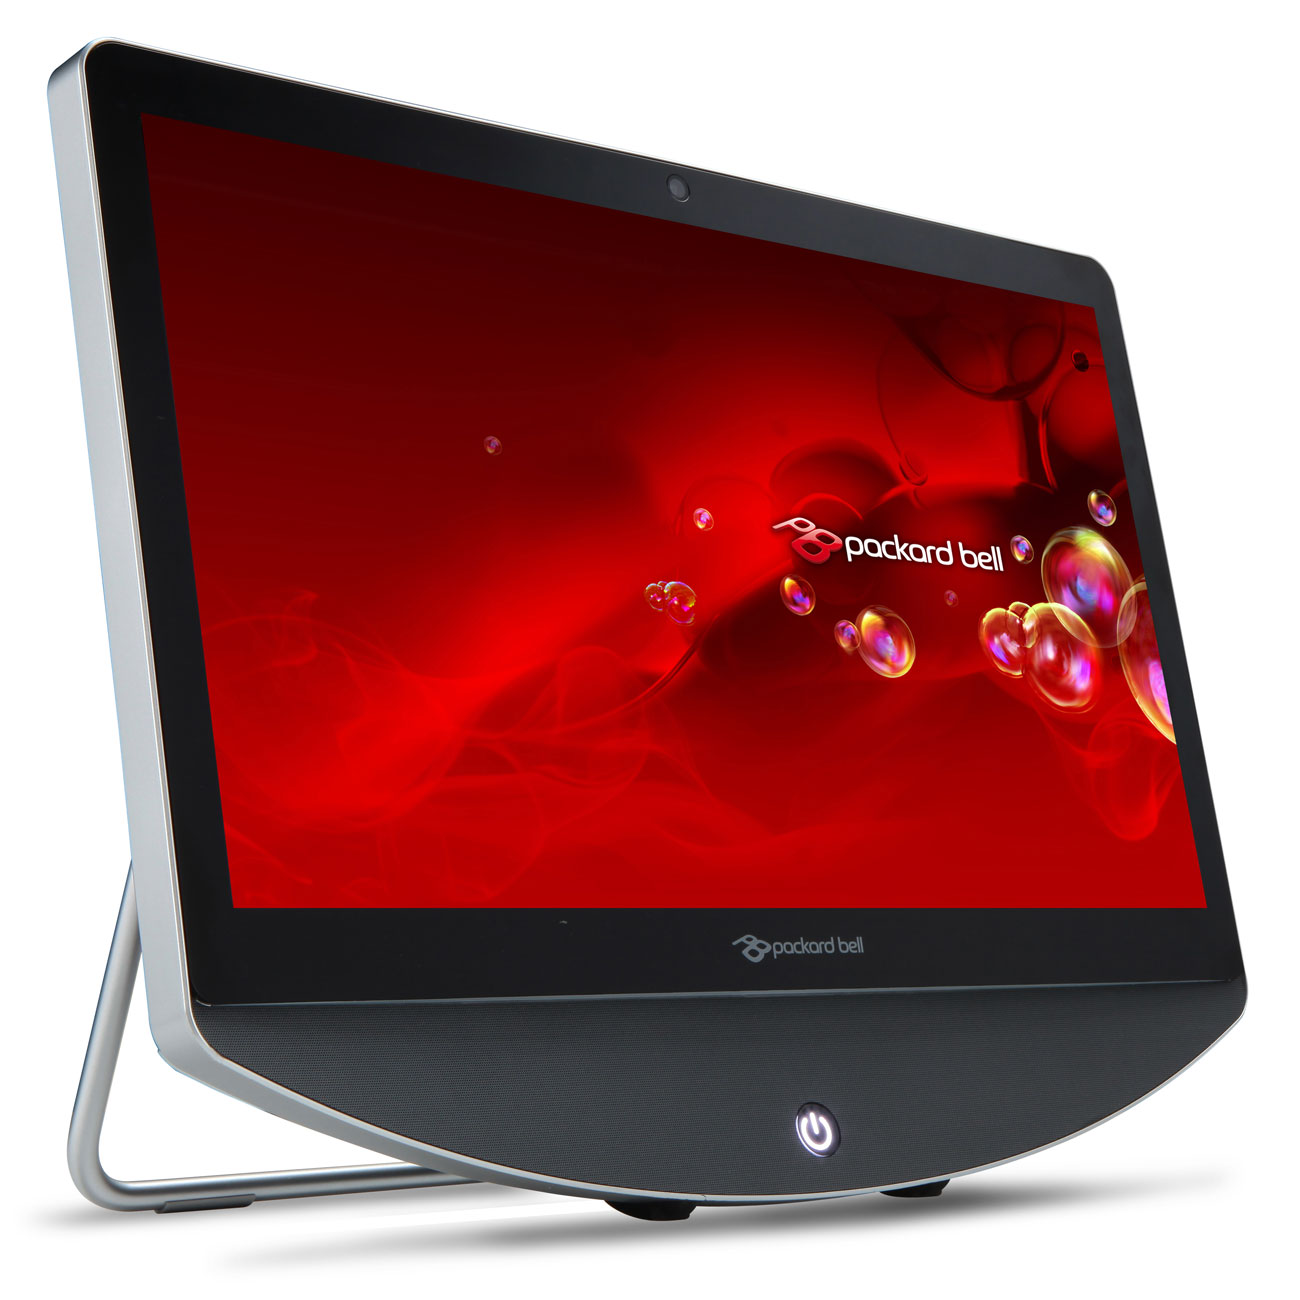 Packard bell onetwo s a3005 fr pc de bureau packard bell sur ldlc - Ordinateur de bureau windows 7 pro ...